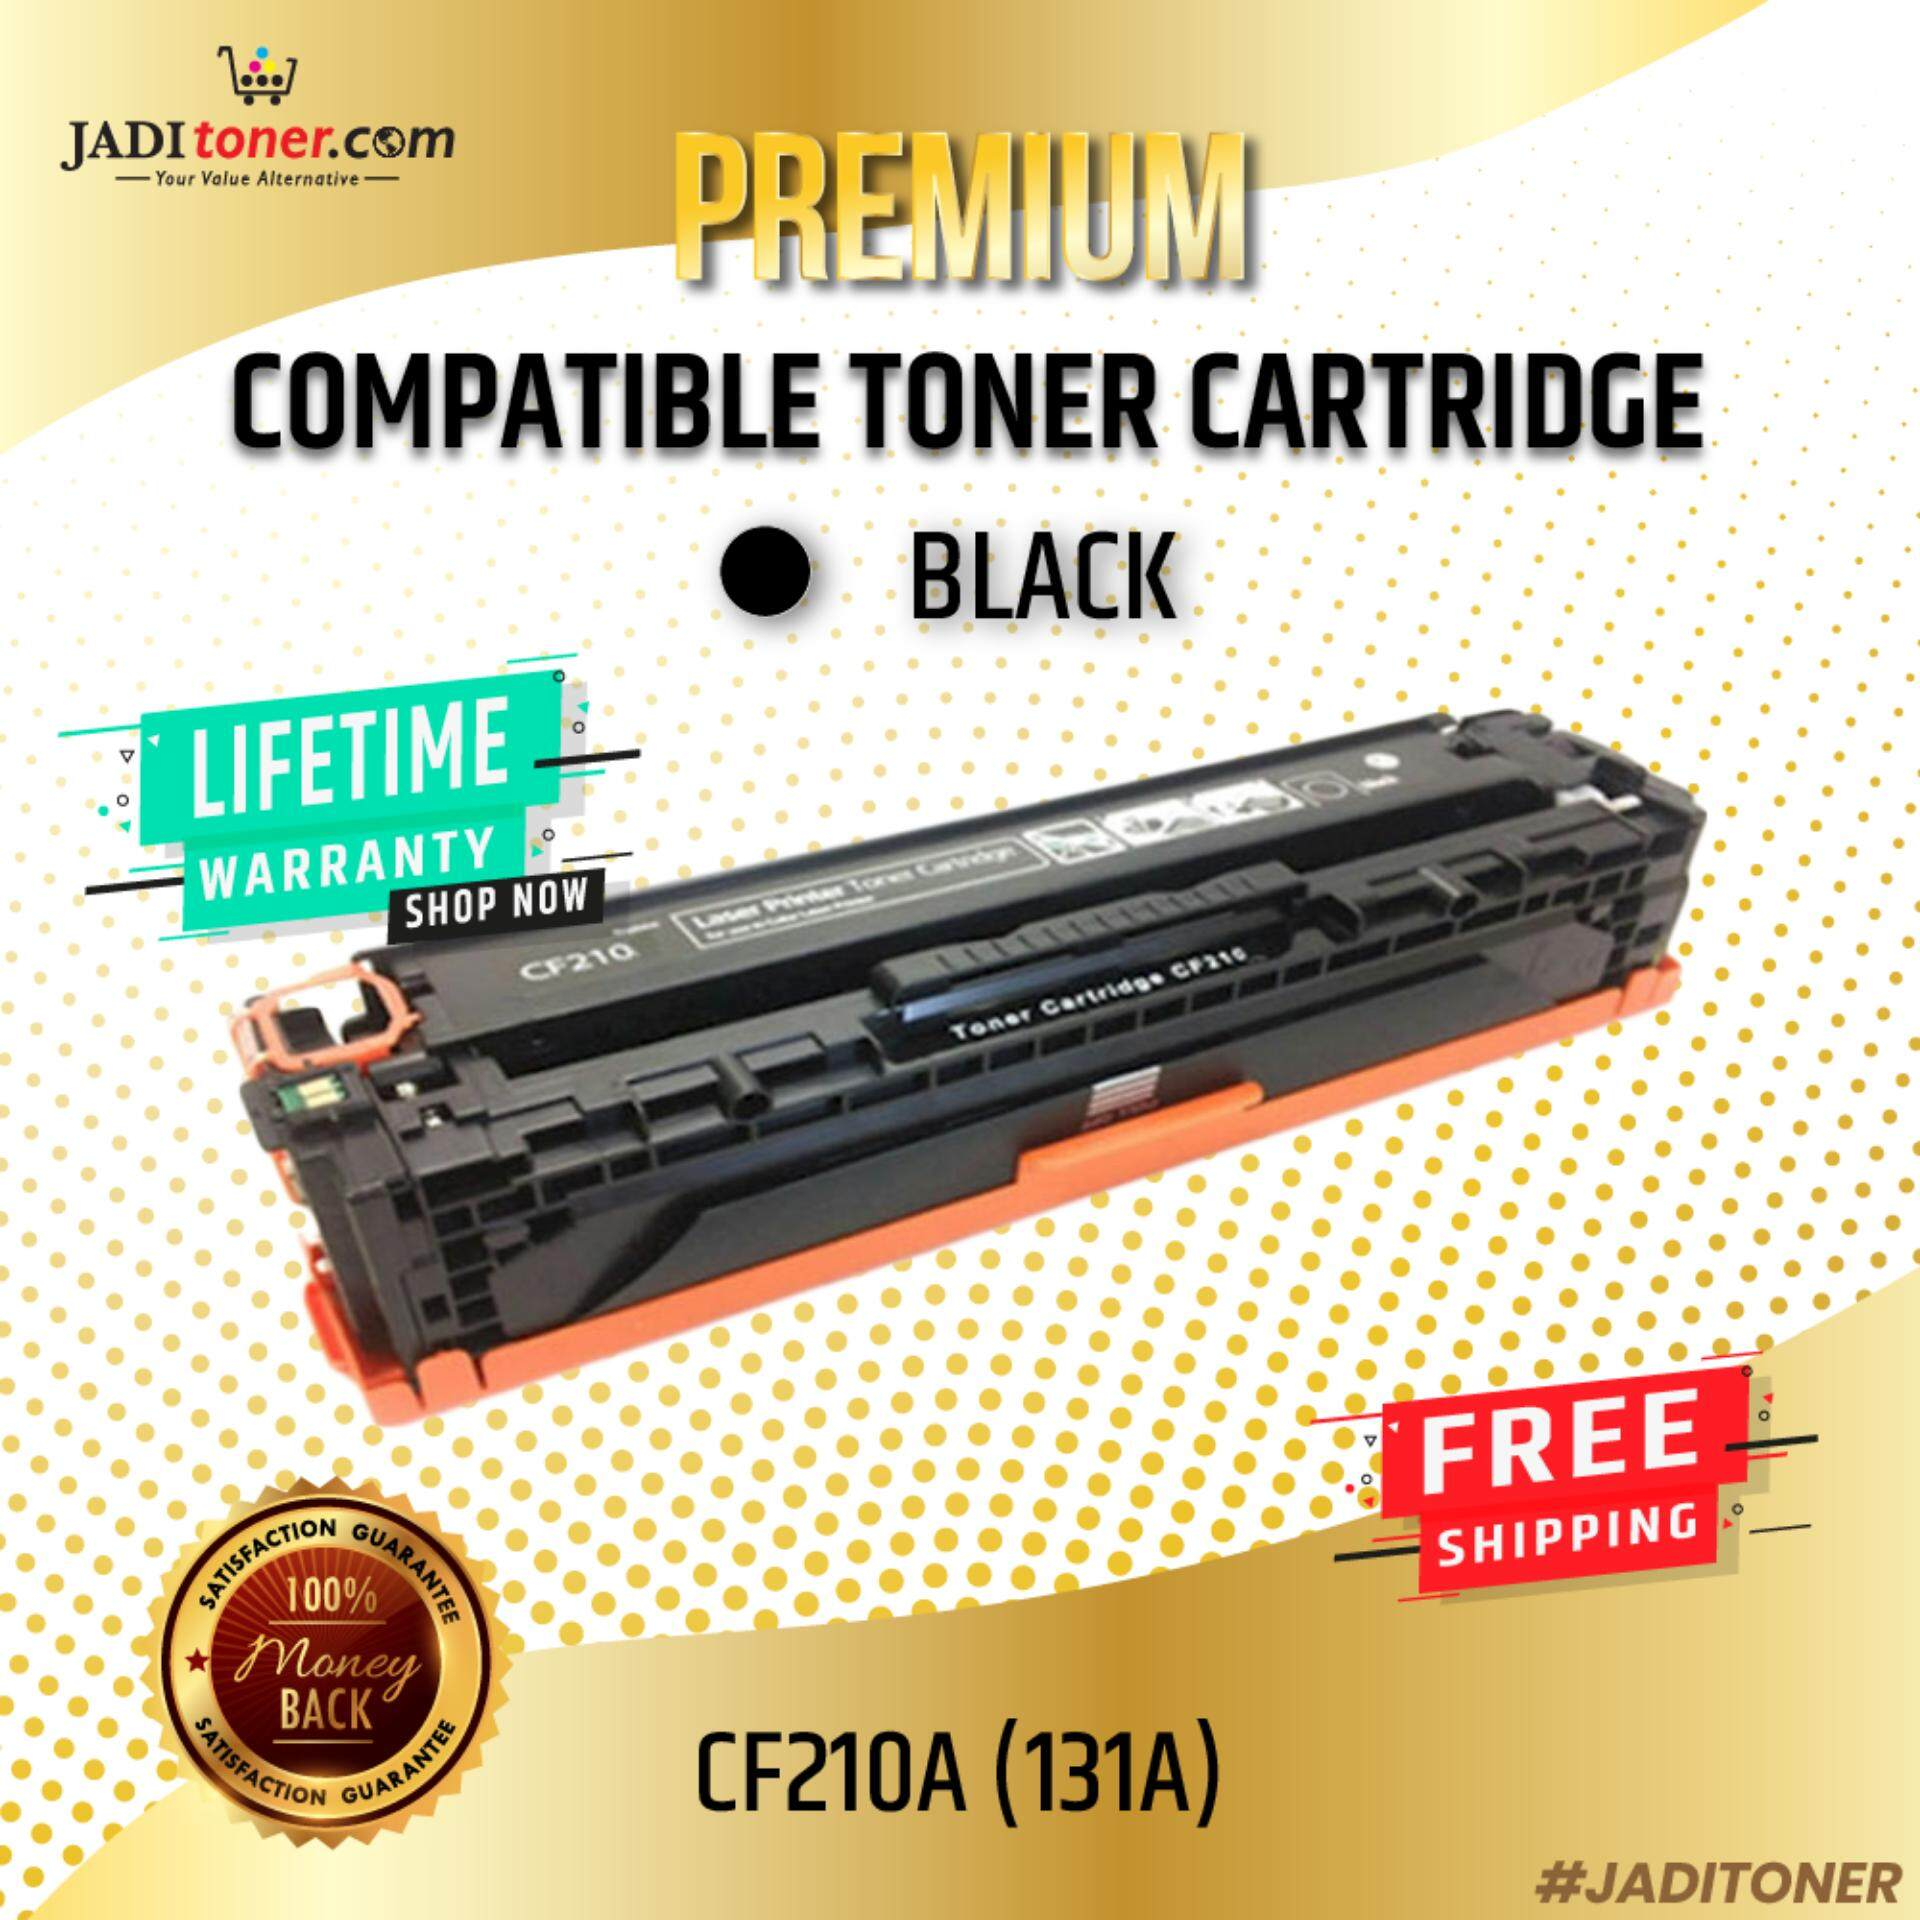 Compatible CF210A 131A Black Laser Toner Cartridge For HP Color LaserJet Pro 200 M251nw / HP Color LaserJet Pro 200 M276n / M251 / M276 / HP CF210 210A